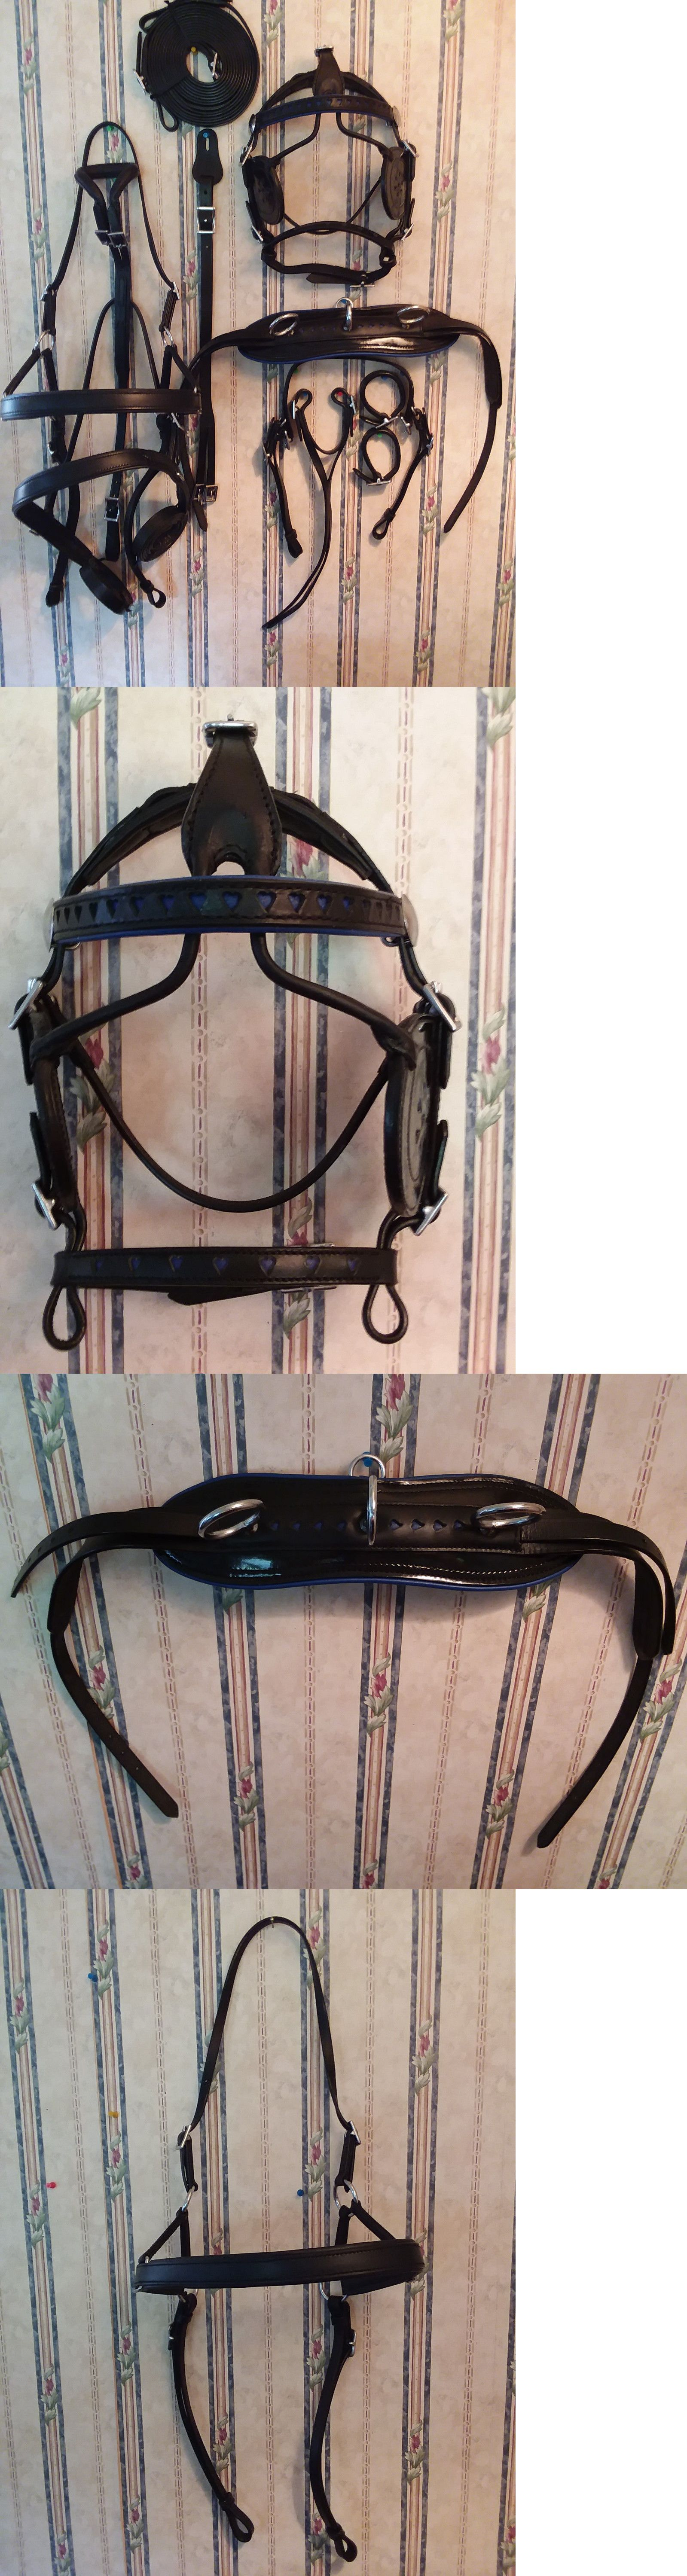 small resolution of driving equipment 85178 black leather shetland pony mini miniature driving horse harness w blue hearts buy it now only 149 95 on ebay driving